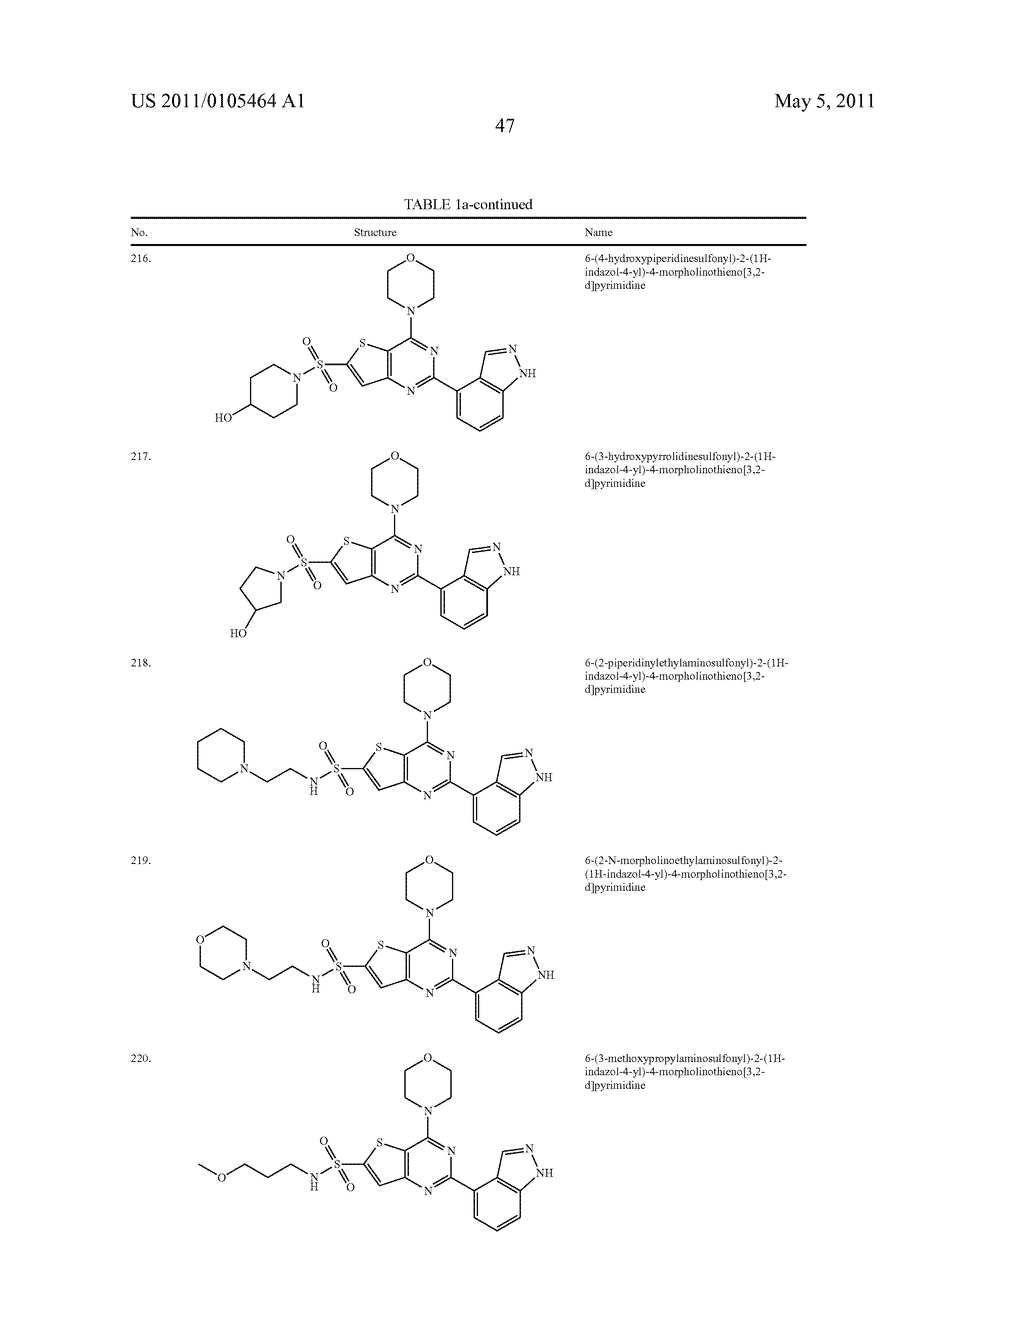 PHOSPHOINOSITIDE 3-KINASE INHIBITOR COMPOUNDS AND METHODS OF USE - diagram, schematic, and image 48